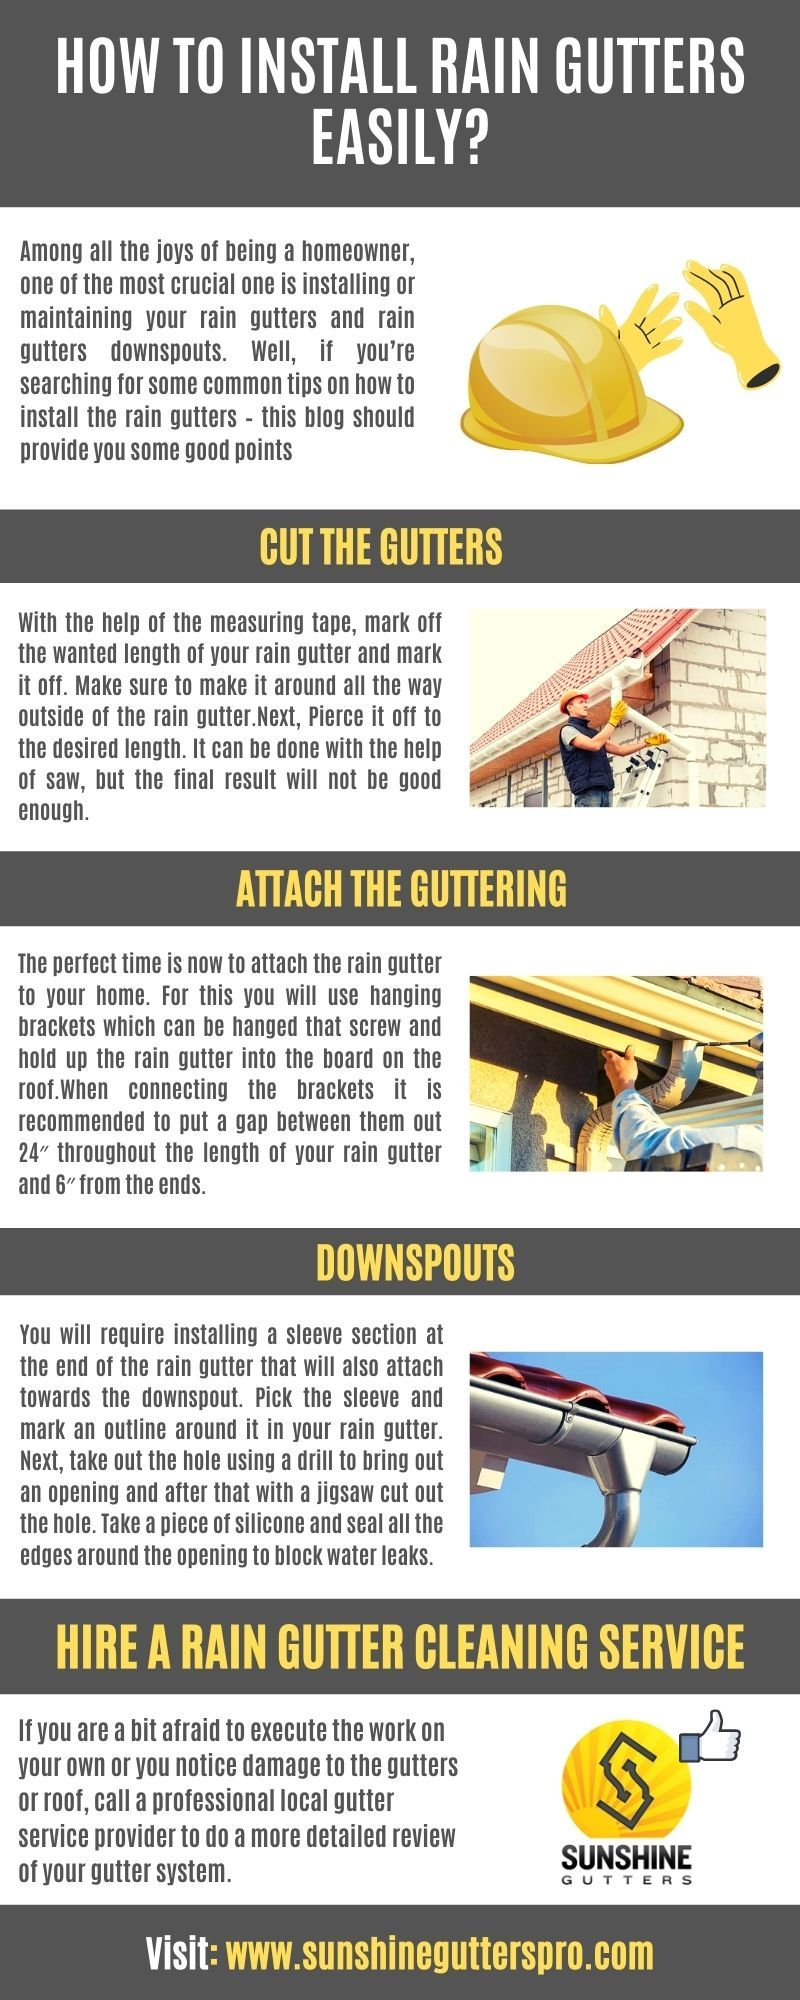 How To Install Rain Gutters Easily In 2020 Rain Gutters Rain Gutter Installation How To Install Gutters